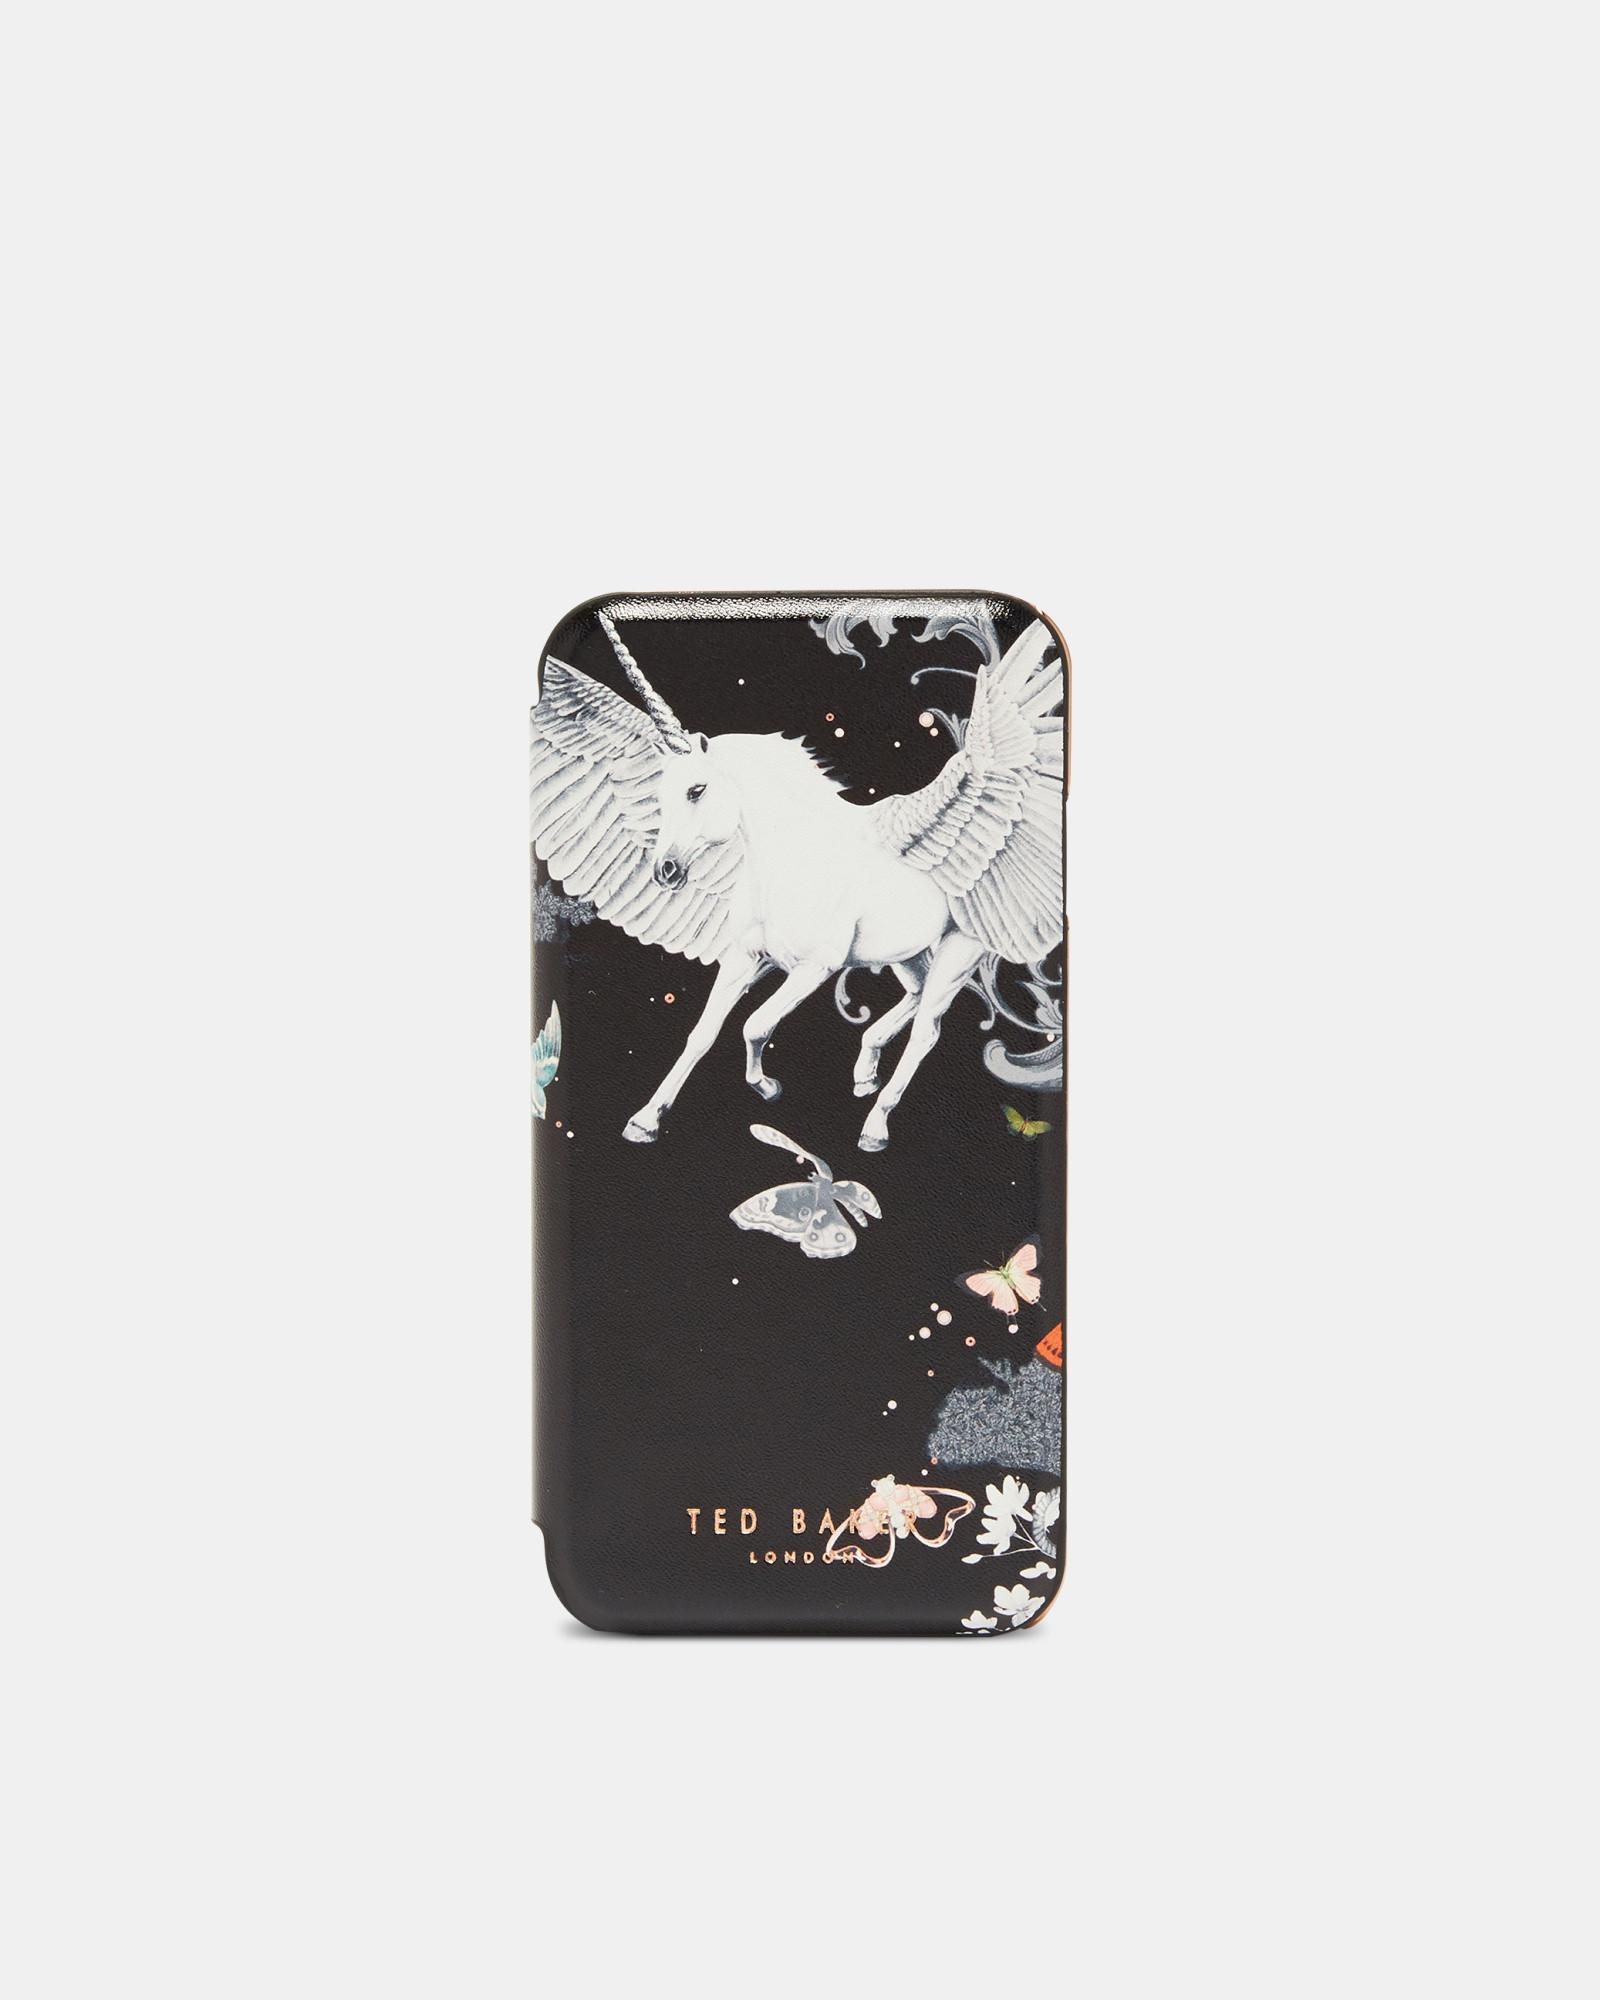 quality design 86317 c2bf3 Ted Baker Black Enchanted Dream Iphone Flip Case